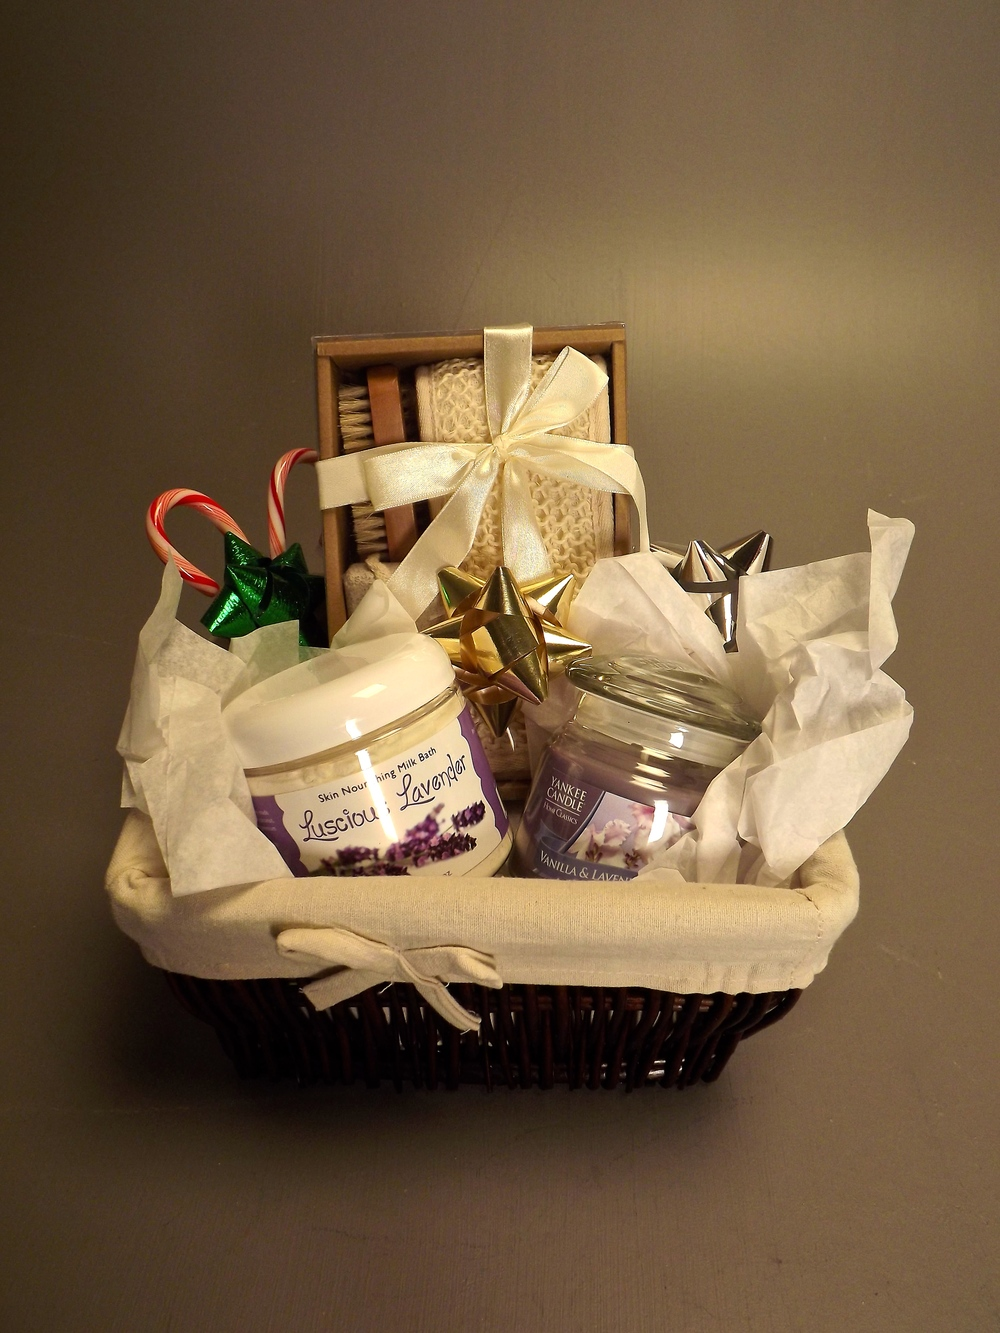 Basket includes: Luffa/brush/scrubber set, Yankee Candle and Milk bath